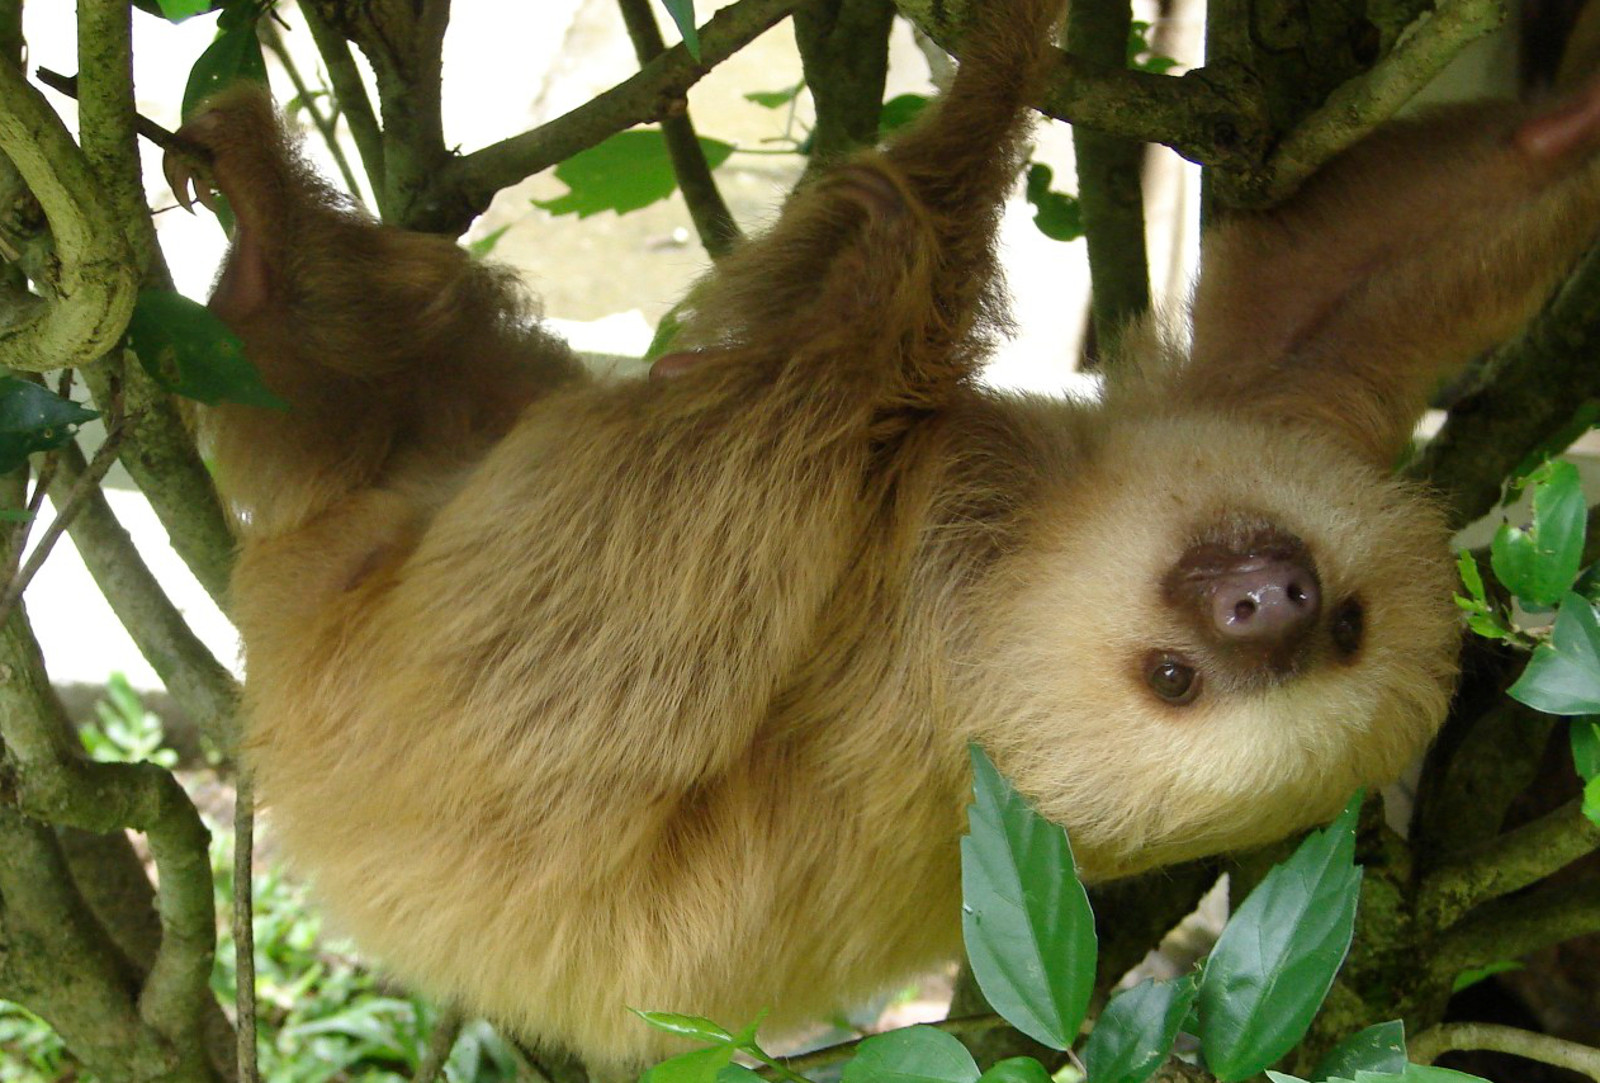 10 Reasons Sloths are Irresistibly Adorable